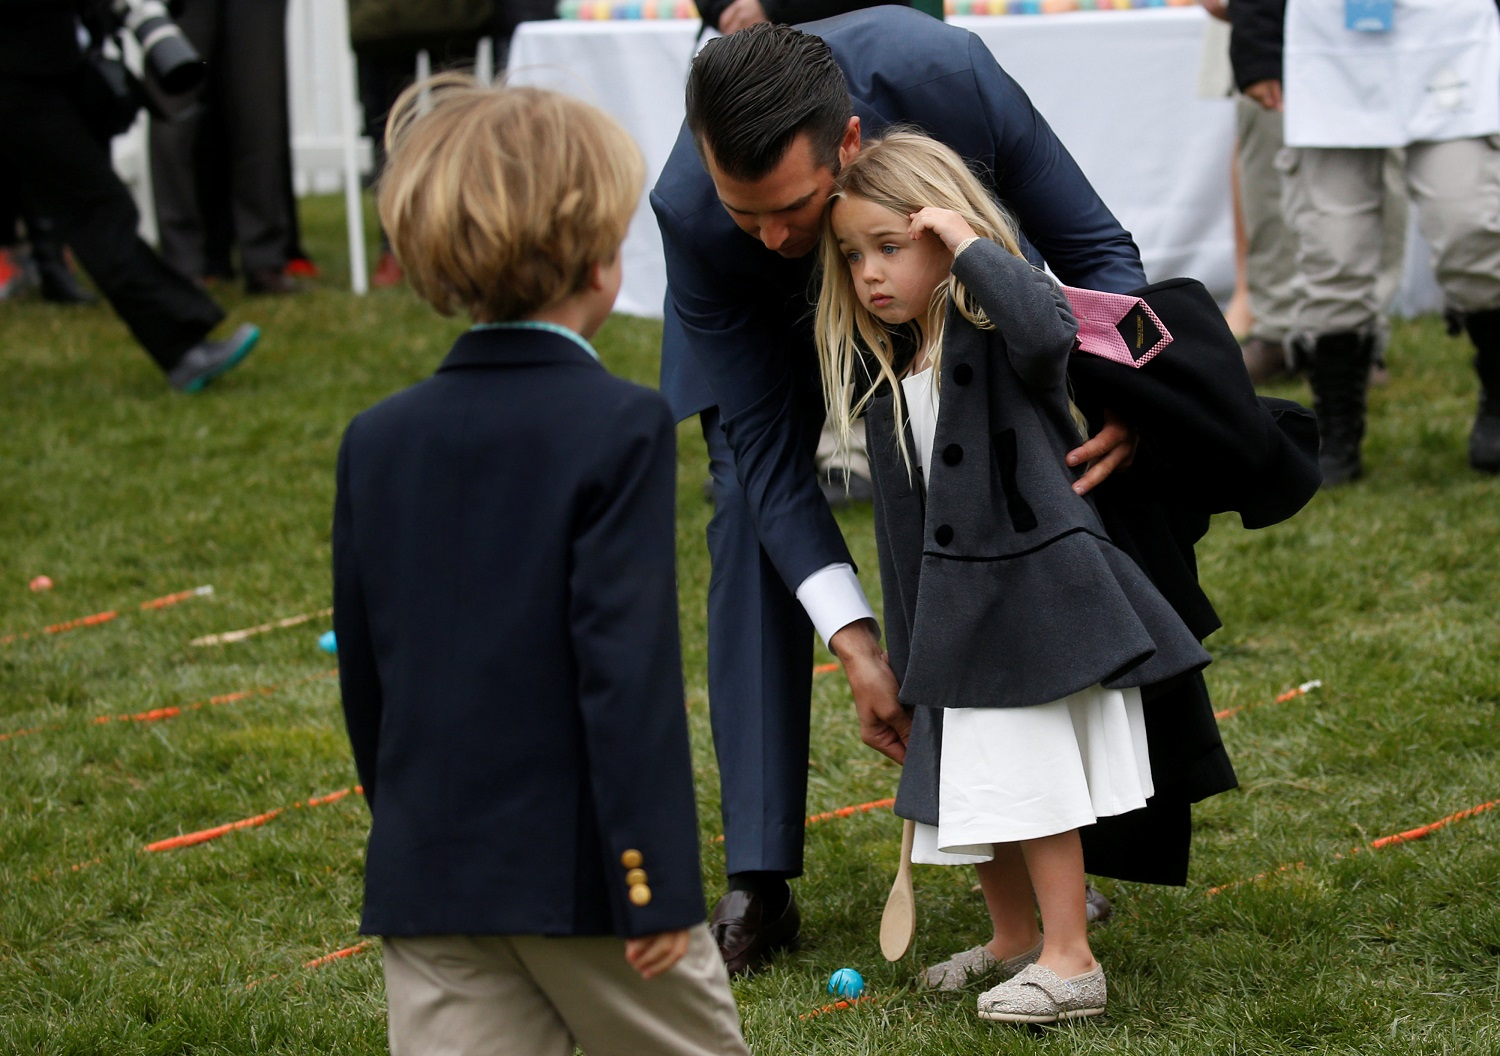 Donald Trump Jr. helps his daughter Chloe Trump participate in the egg roll during the annual White House Easter Egg Roll on the South Lawn of the White House in Washington, April 2, 2018. REUTERS/Leah Millis